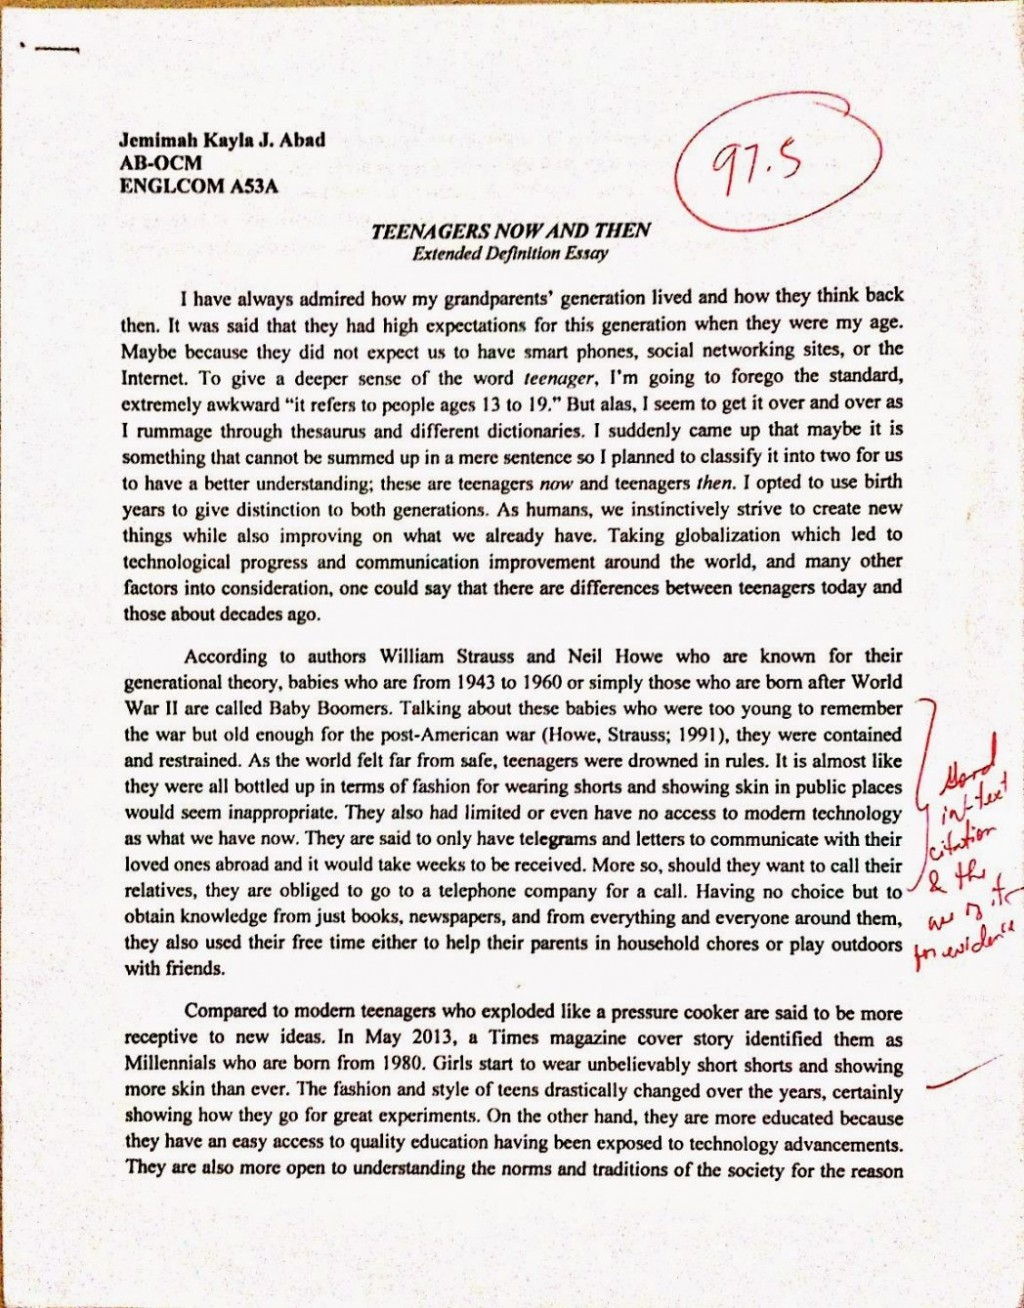 020 Persuasive Essay Definition Sample Argumentative Tip Outline Tips Writing Good Pdf Gre Ielts Icse Ap Lang And Tricks 1048x1339 Fearsome Wikipedia Define Format & Examples Large